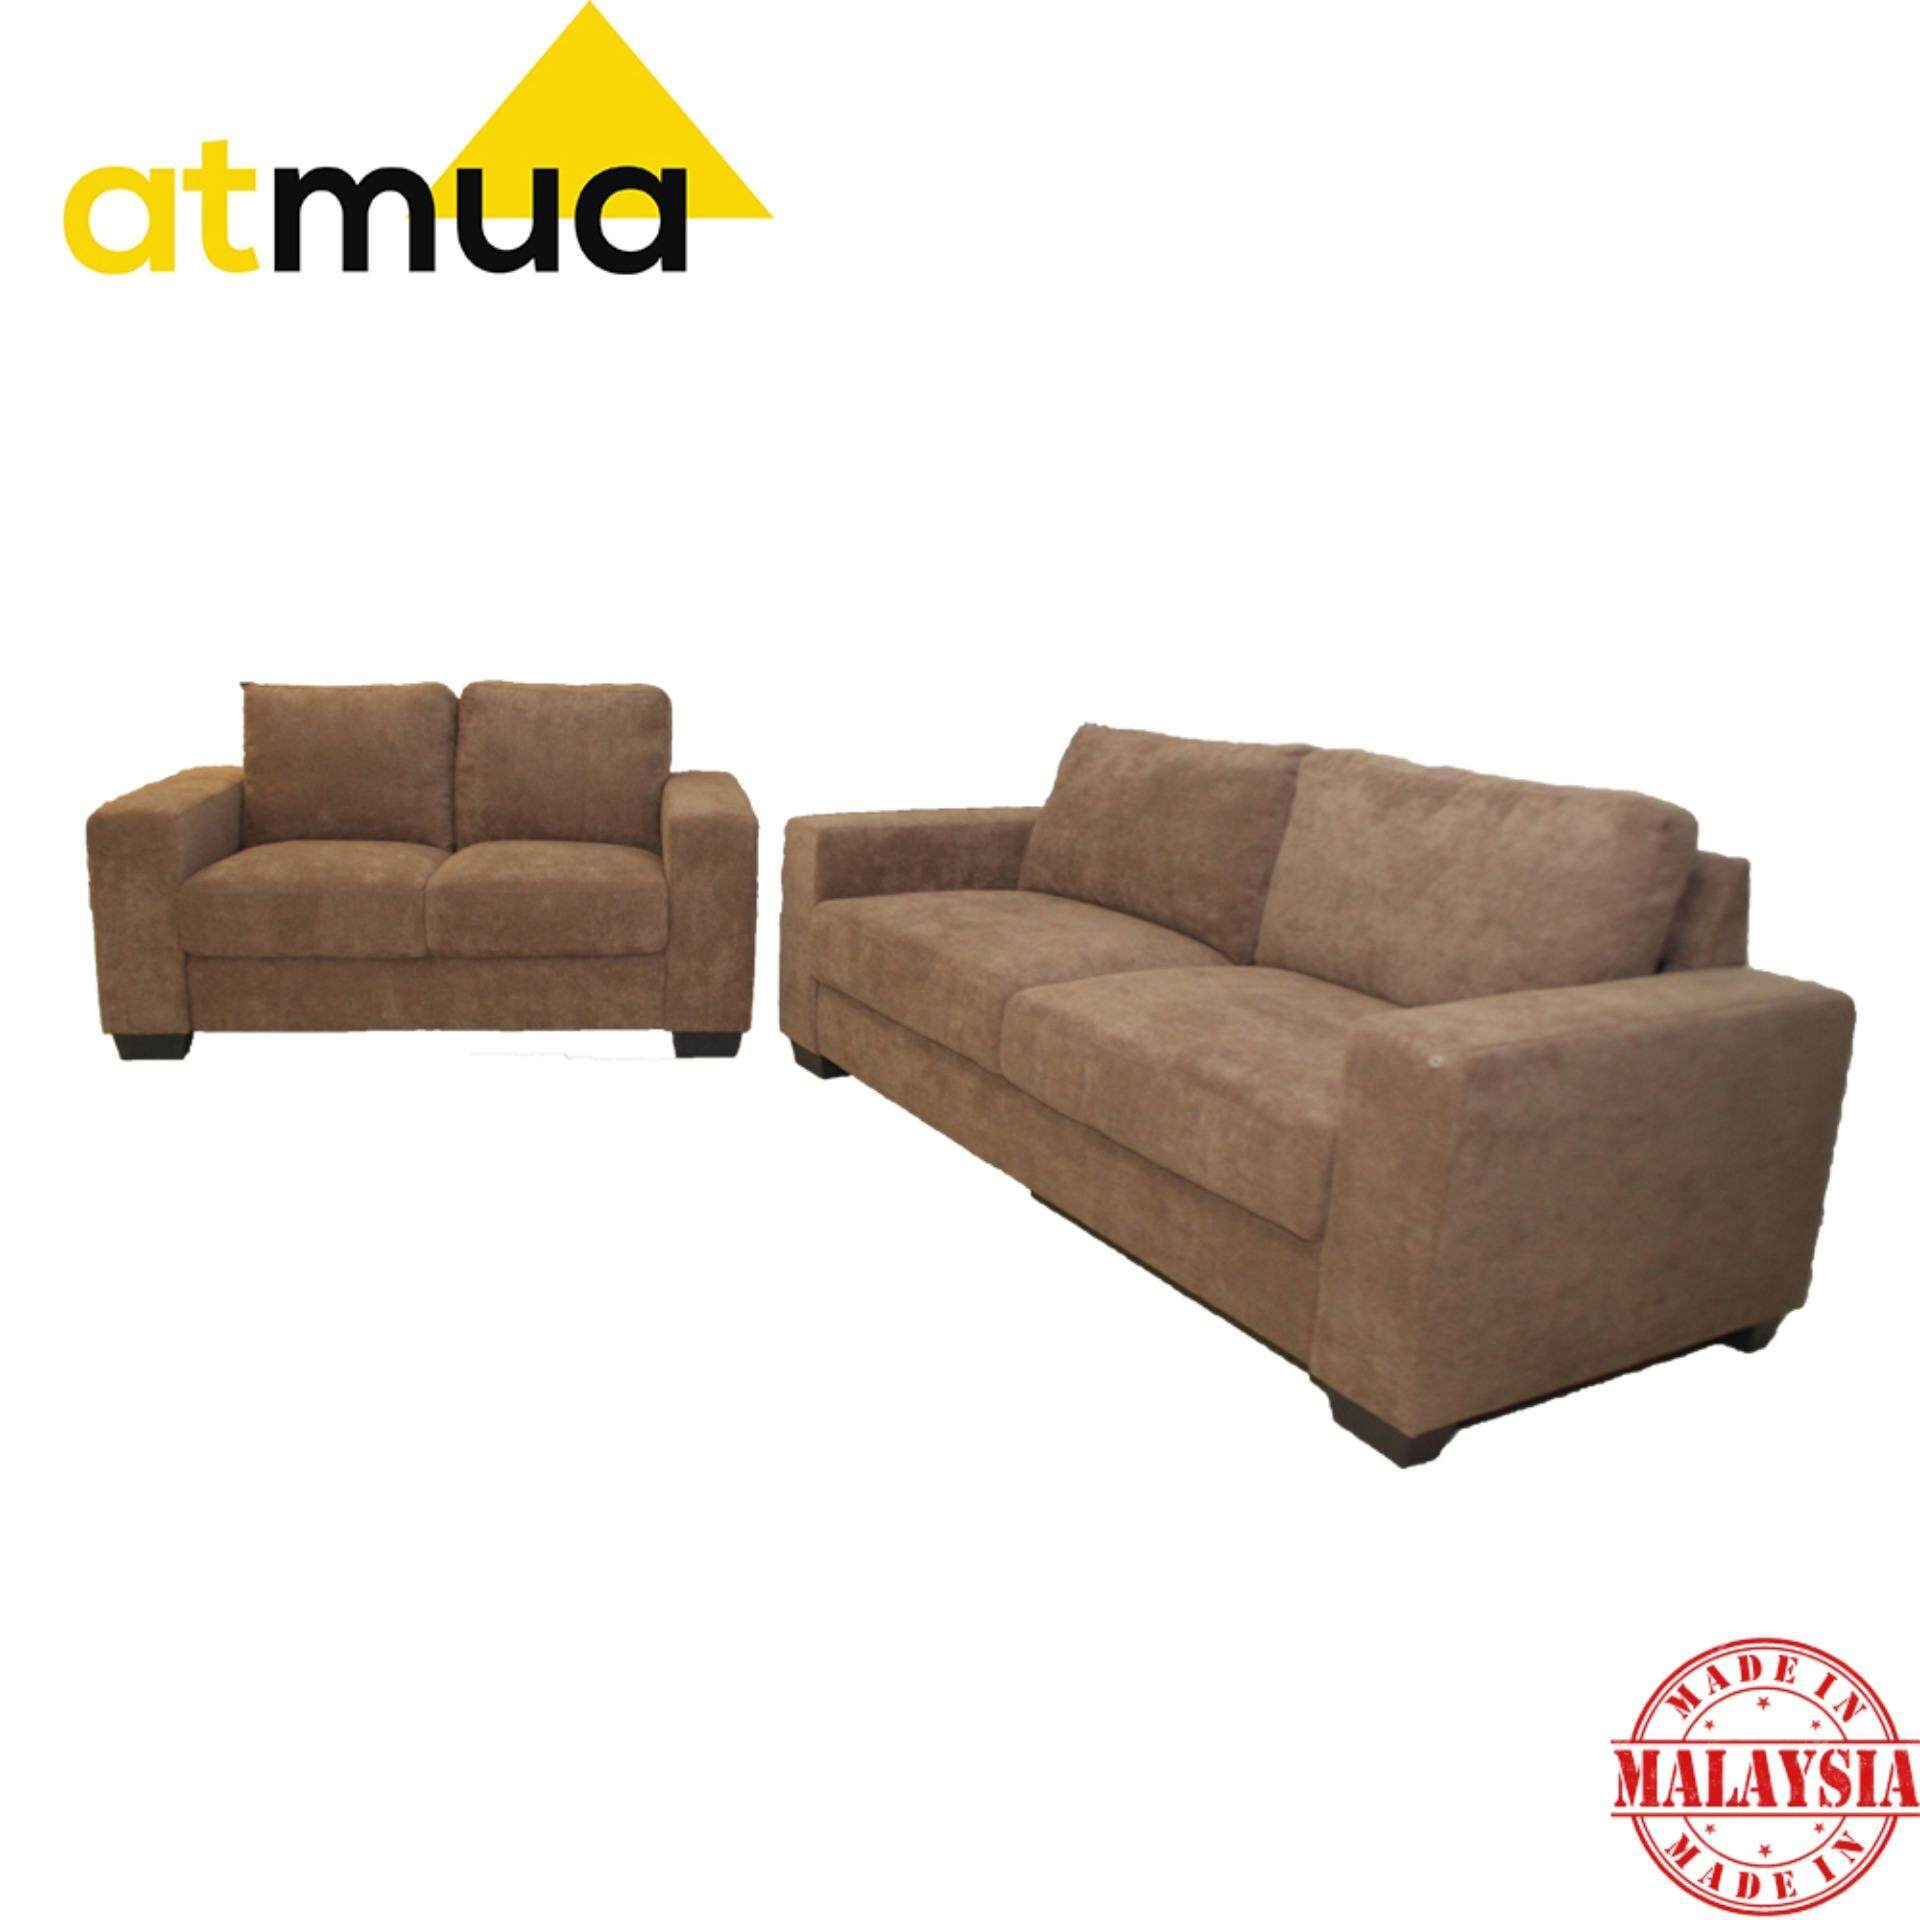 Prime Home Sofas Buy Online With Best Price In Malaysia Download Free Architecture Designs Scobabritishbridgeorg